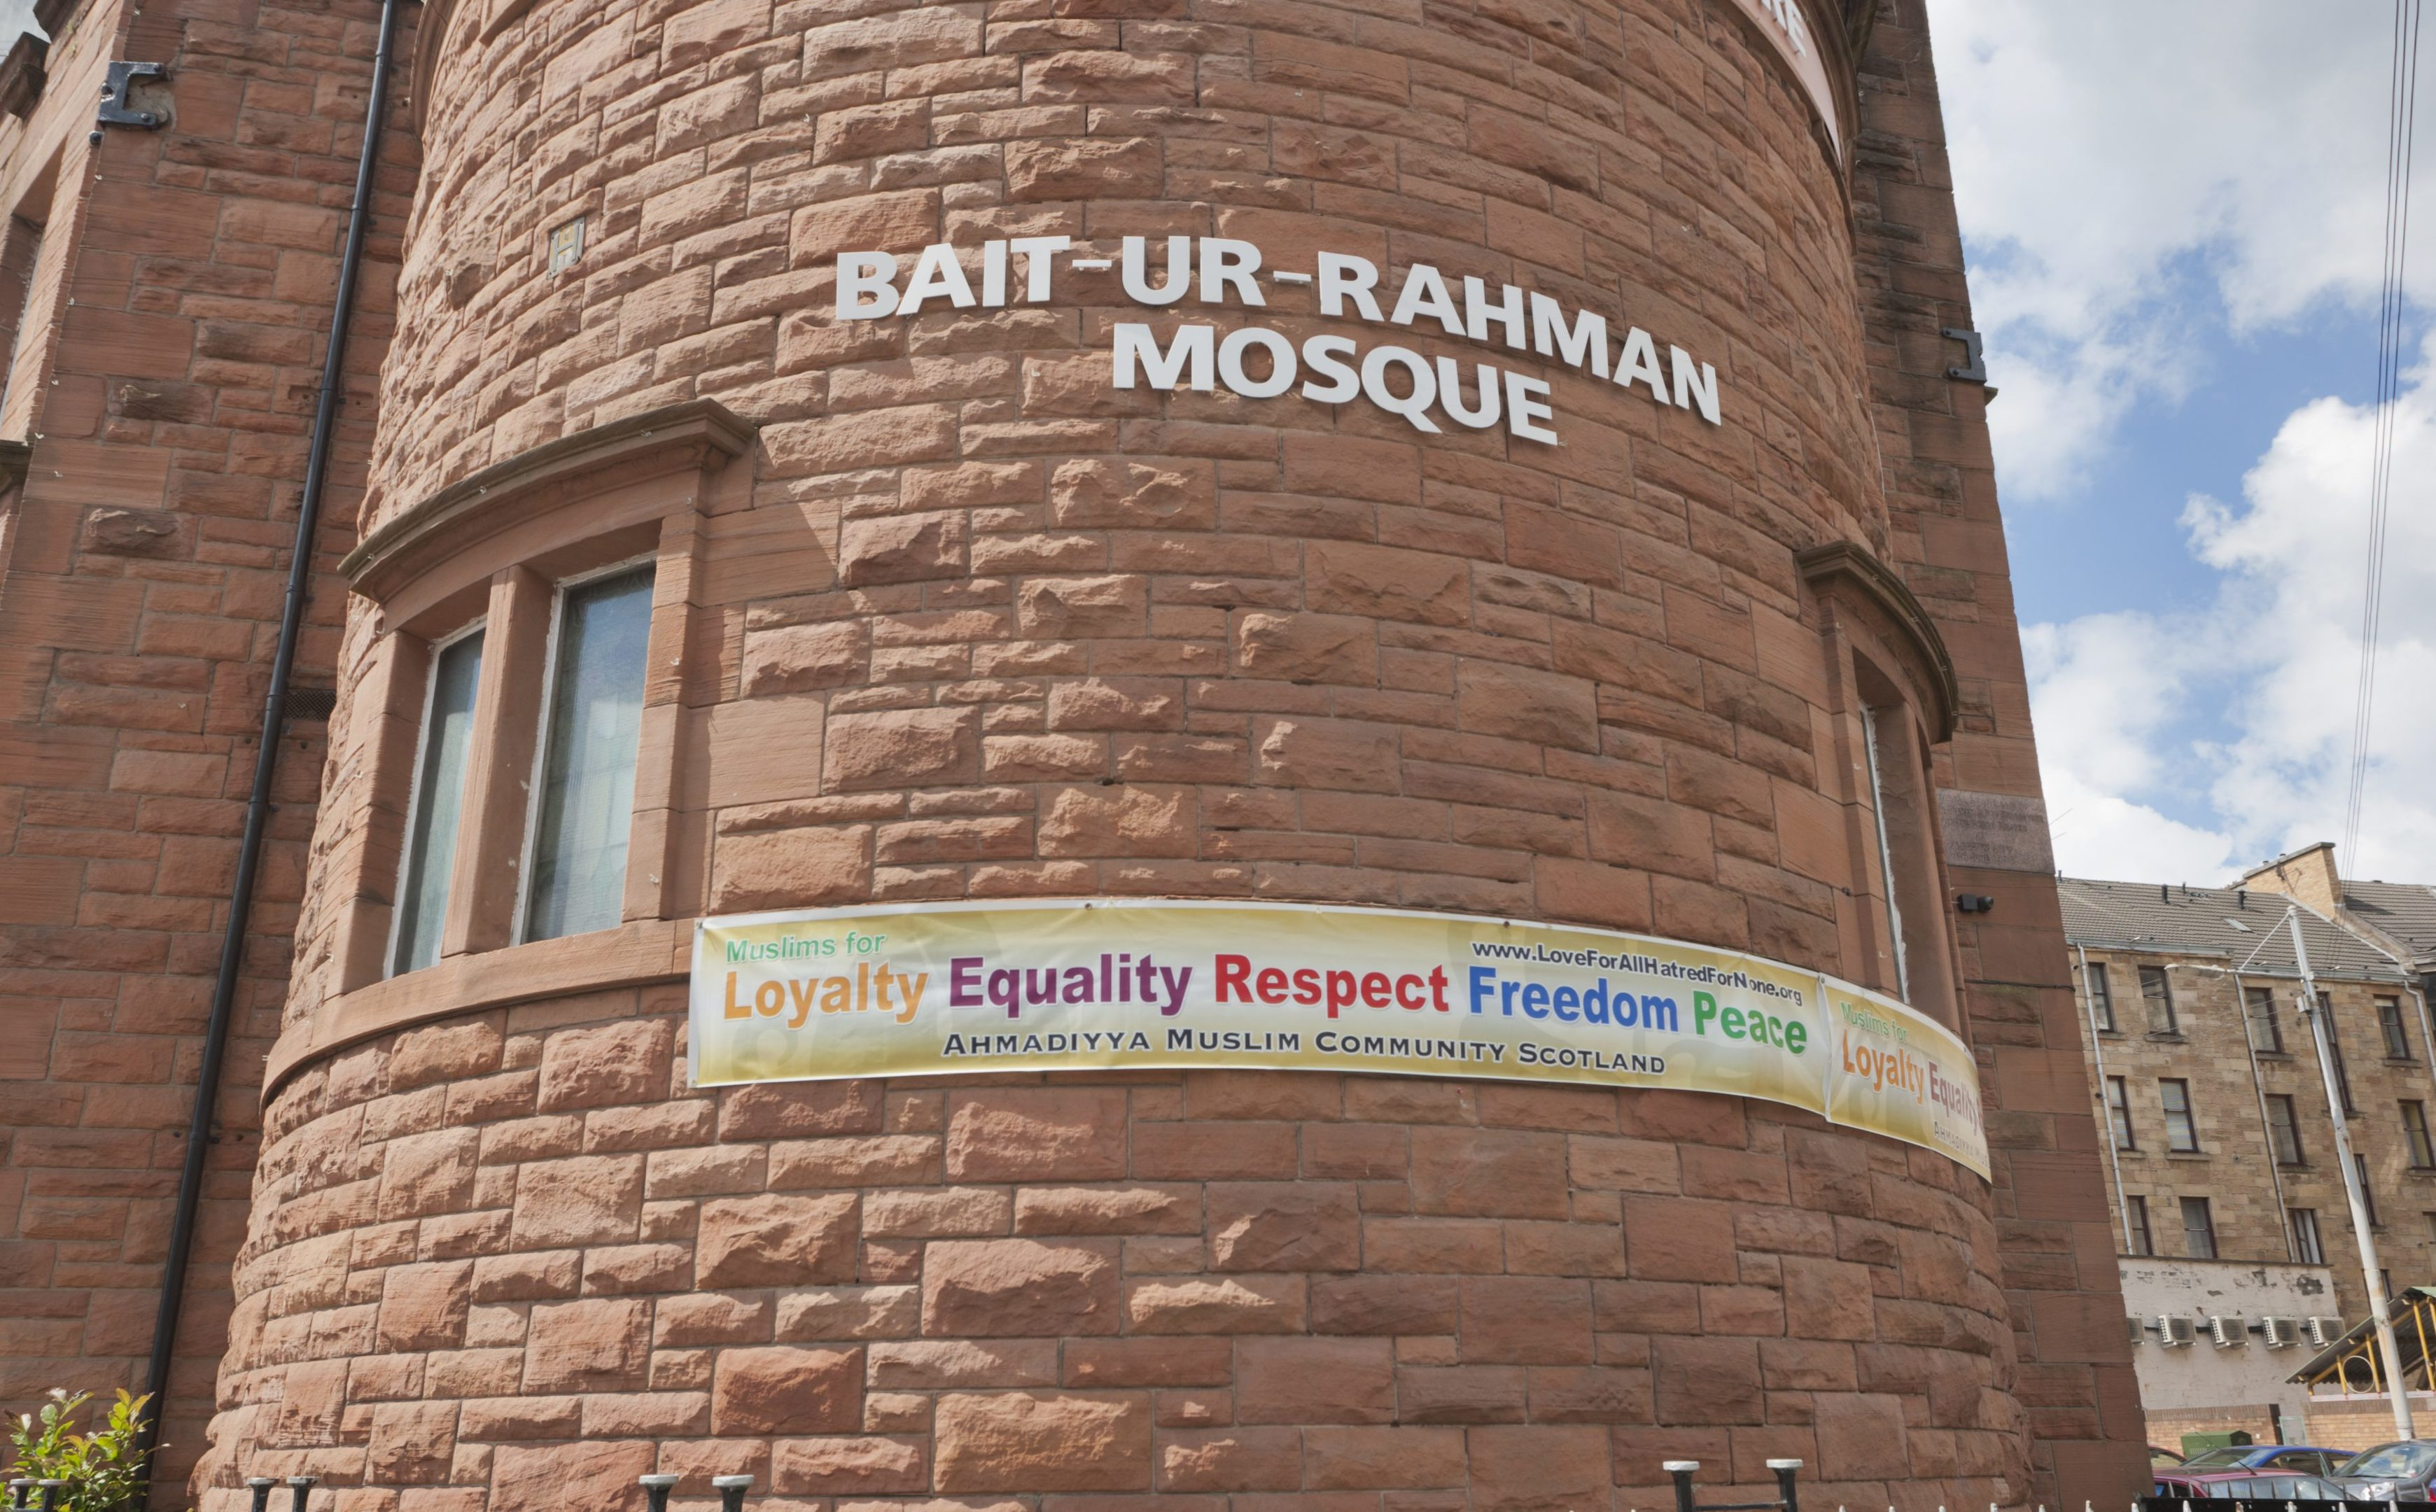 The Bait-Ur-Rahman Mosque in the West End of Glasgow. (iStock)